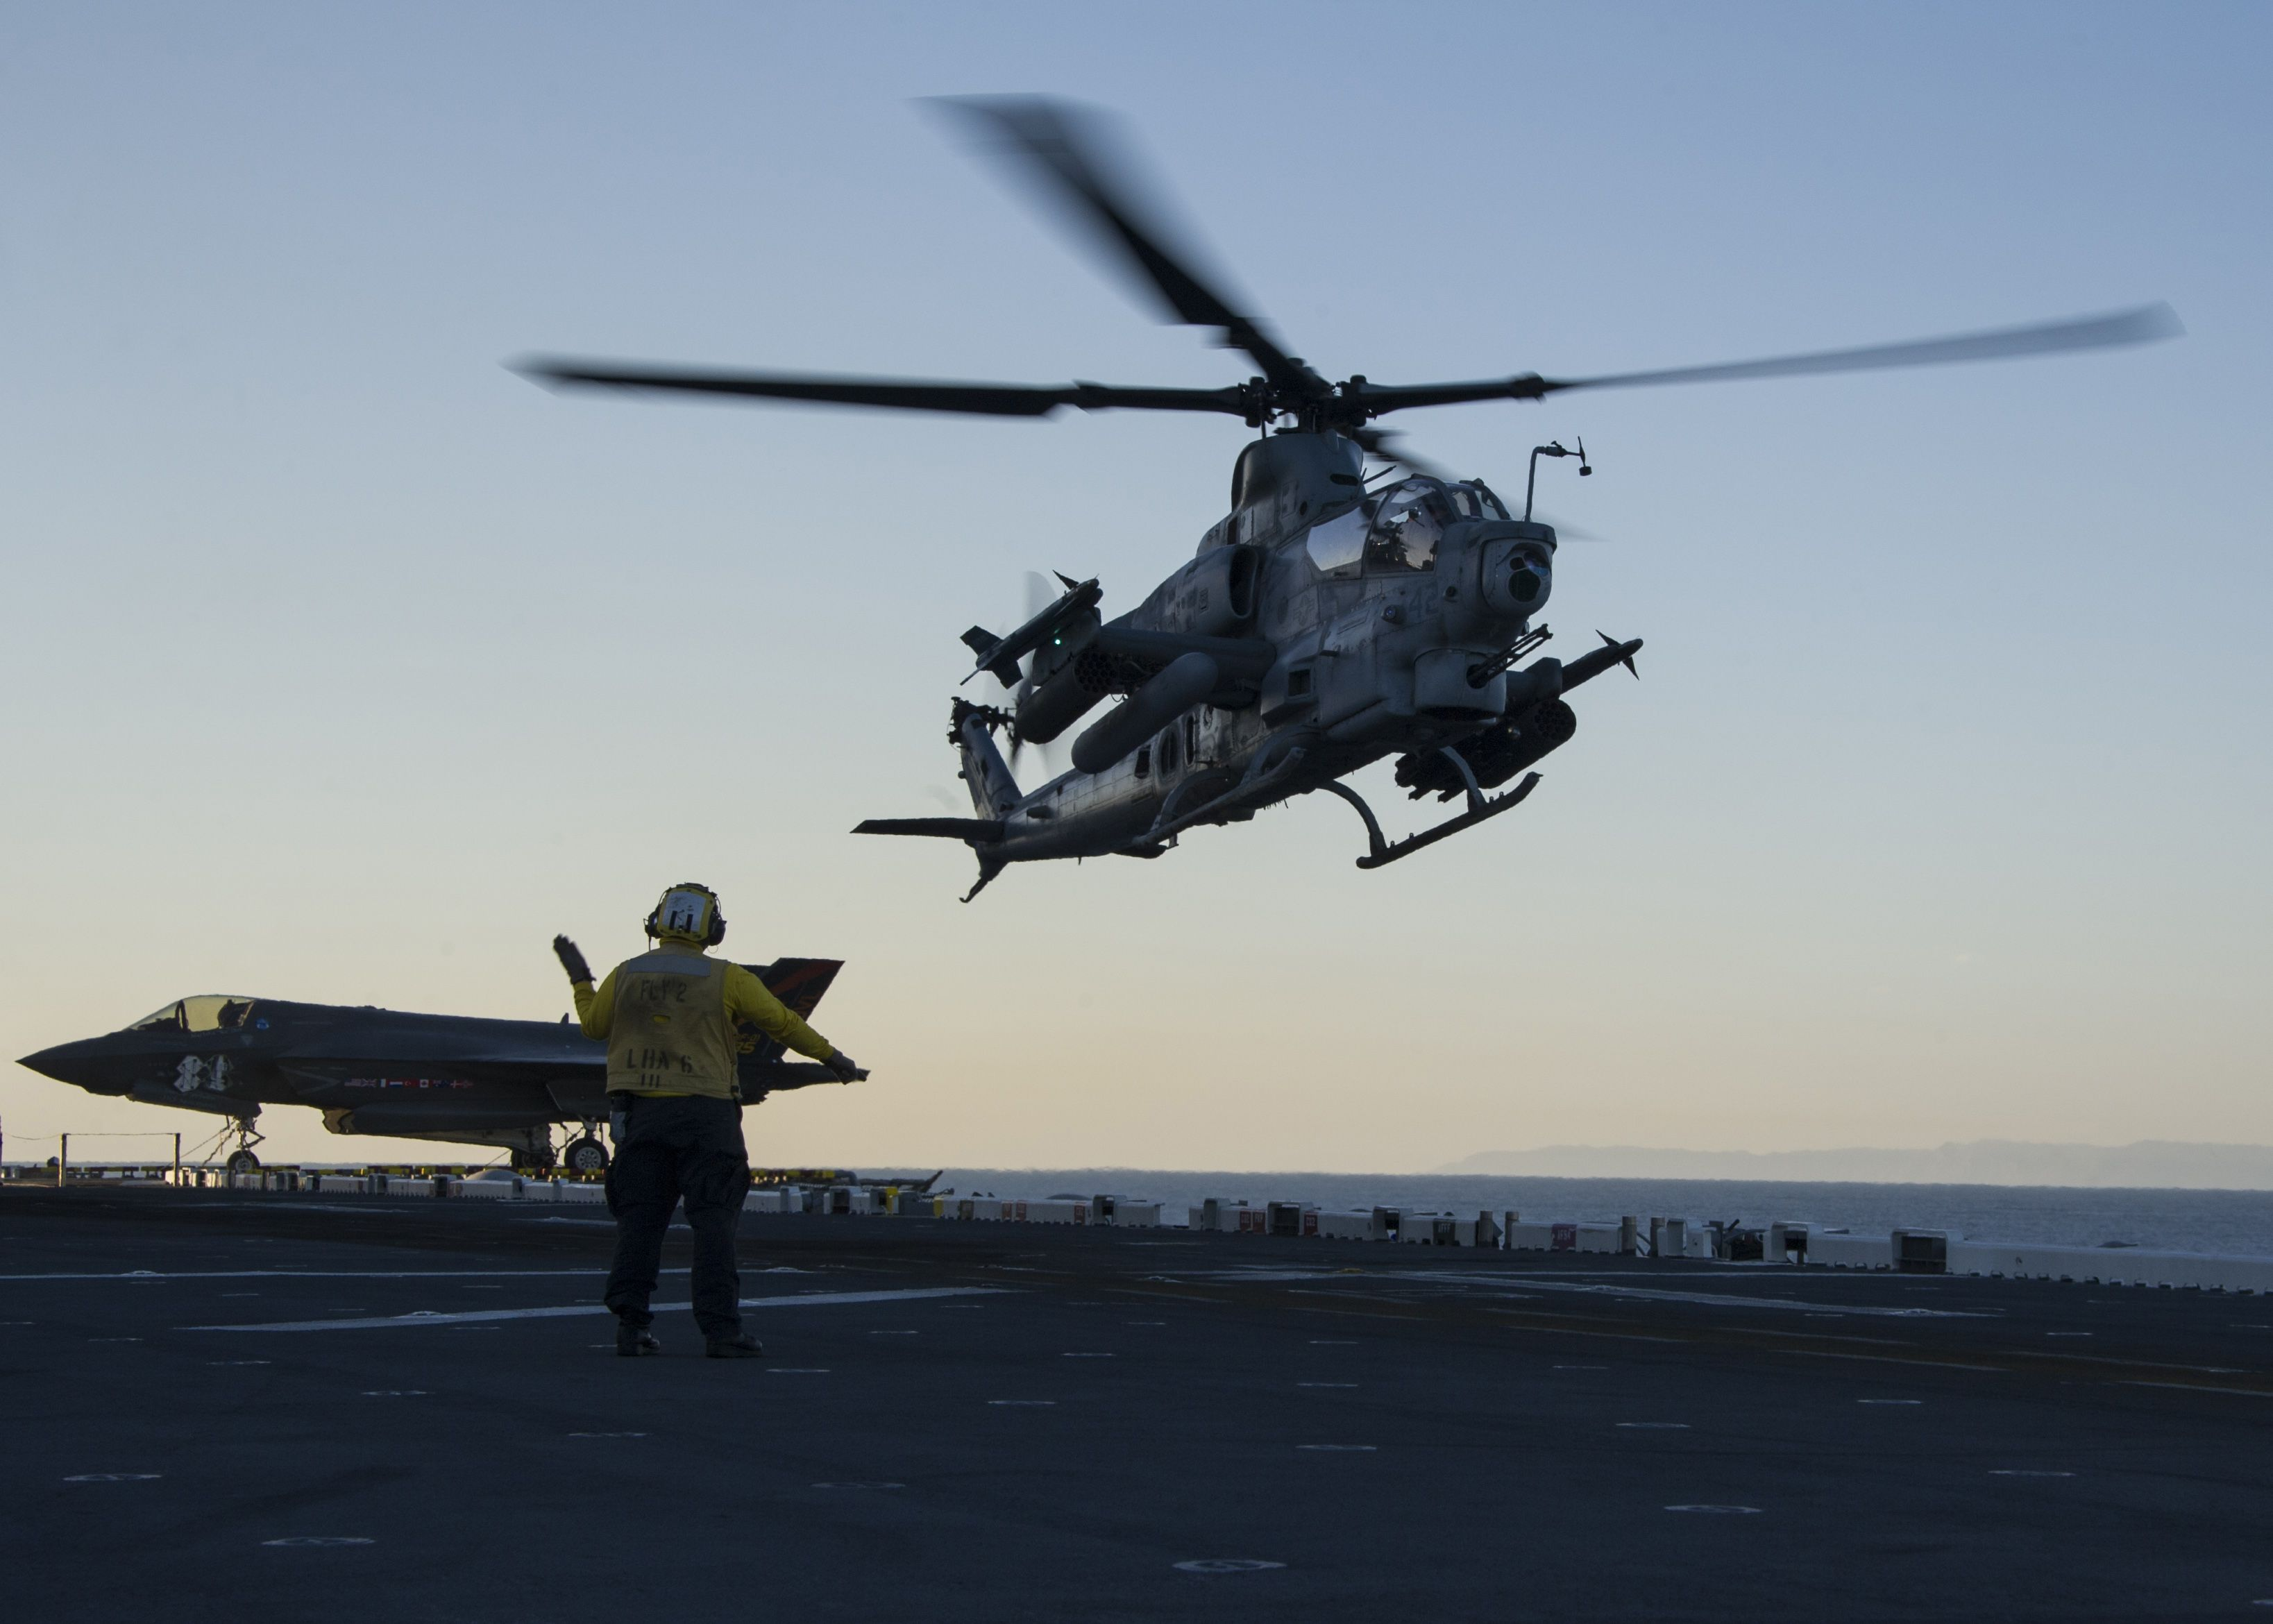 Assigned To Marine Operational Test And Evaluation Squadron 1 Takes Off From The Flight Deck Of Amphibious Assault Ship Uss America As Part Of The Air